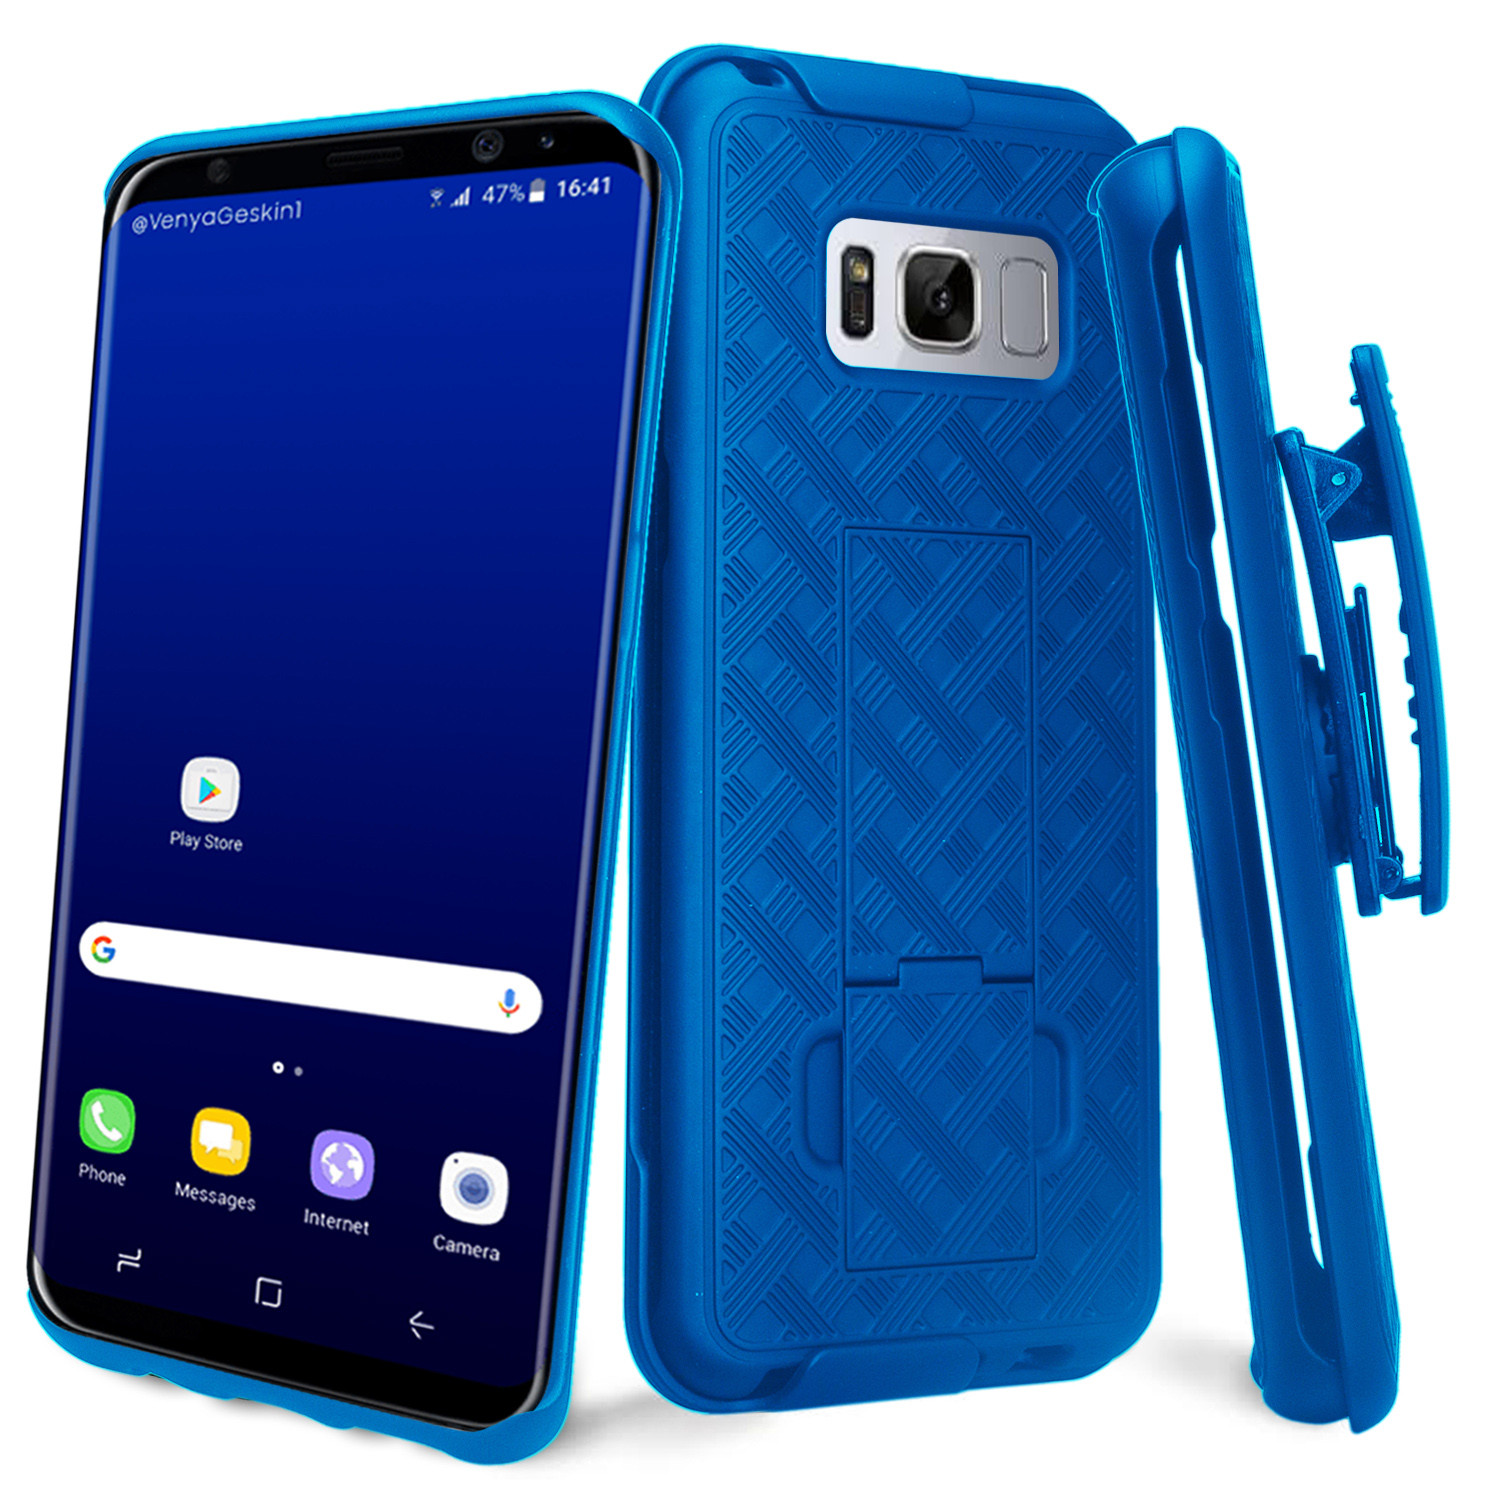 Galaxy S8 Holster Clip Case, SM-G950 Case, Slim Rugged Rotating Swivel Locking Holster Shell Combo Case Cover for Samsung Galaxy S8 - Black